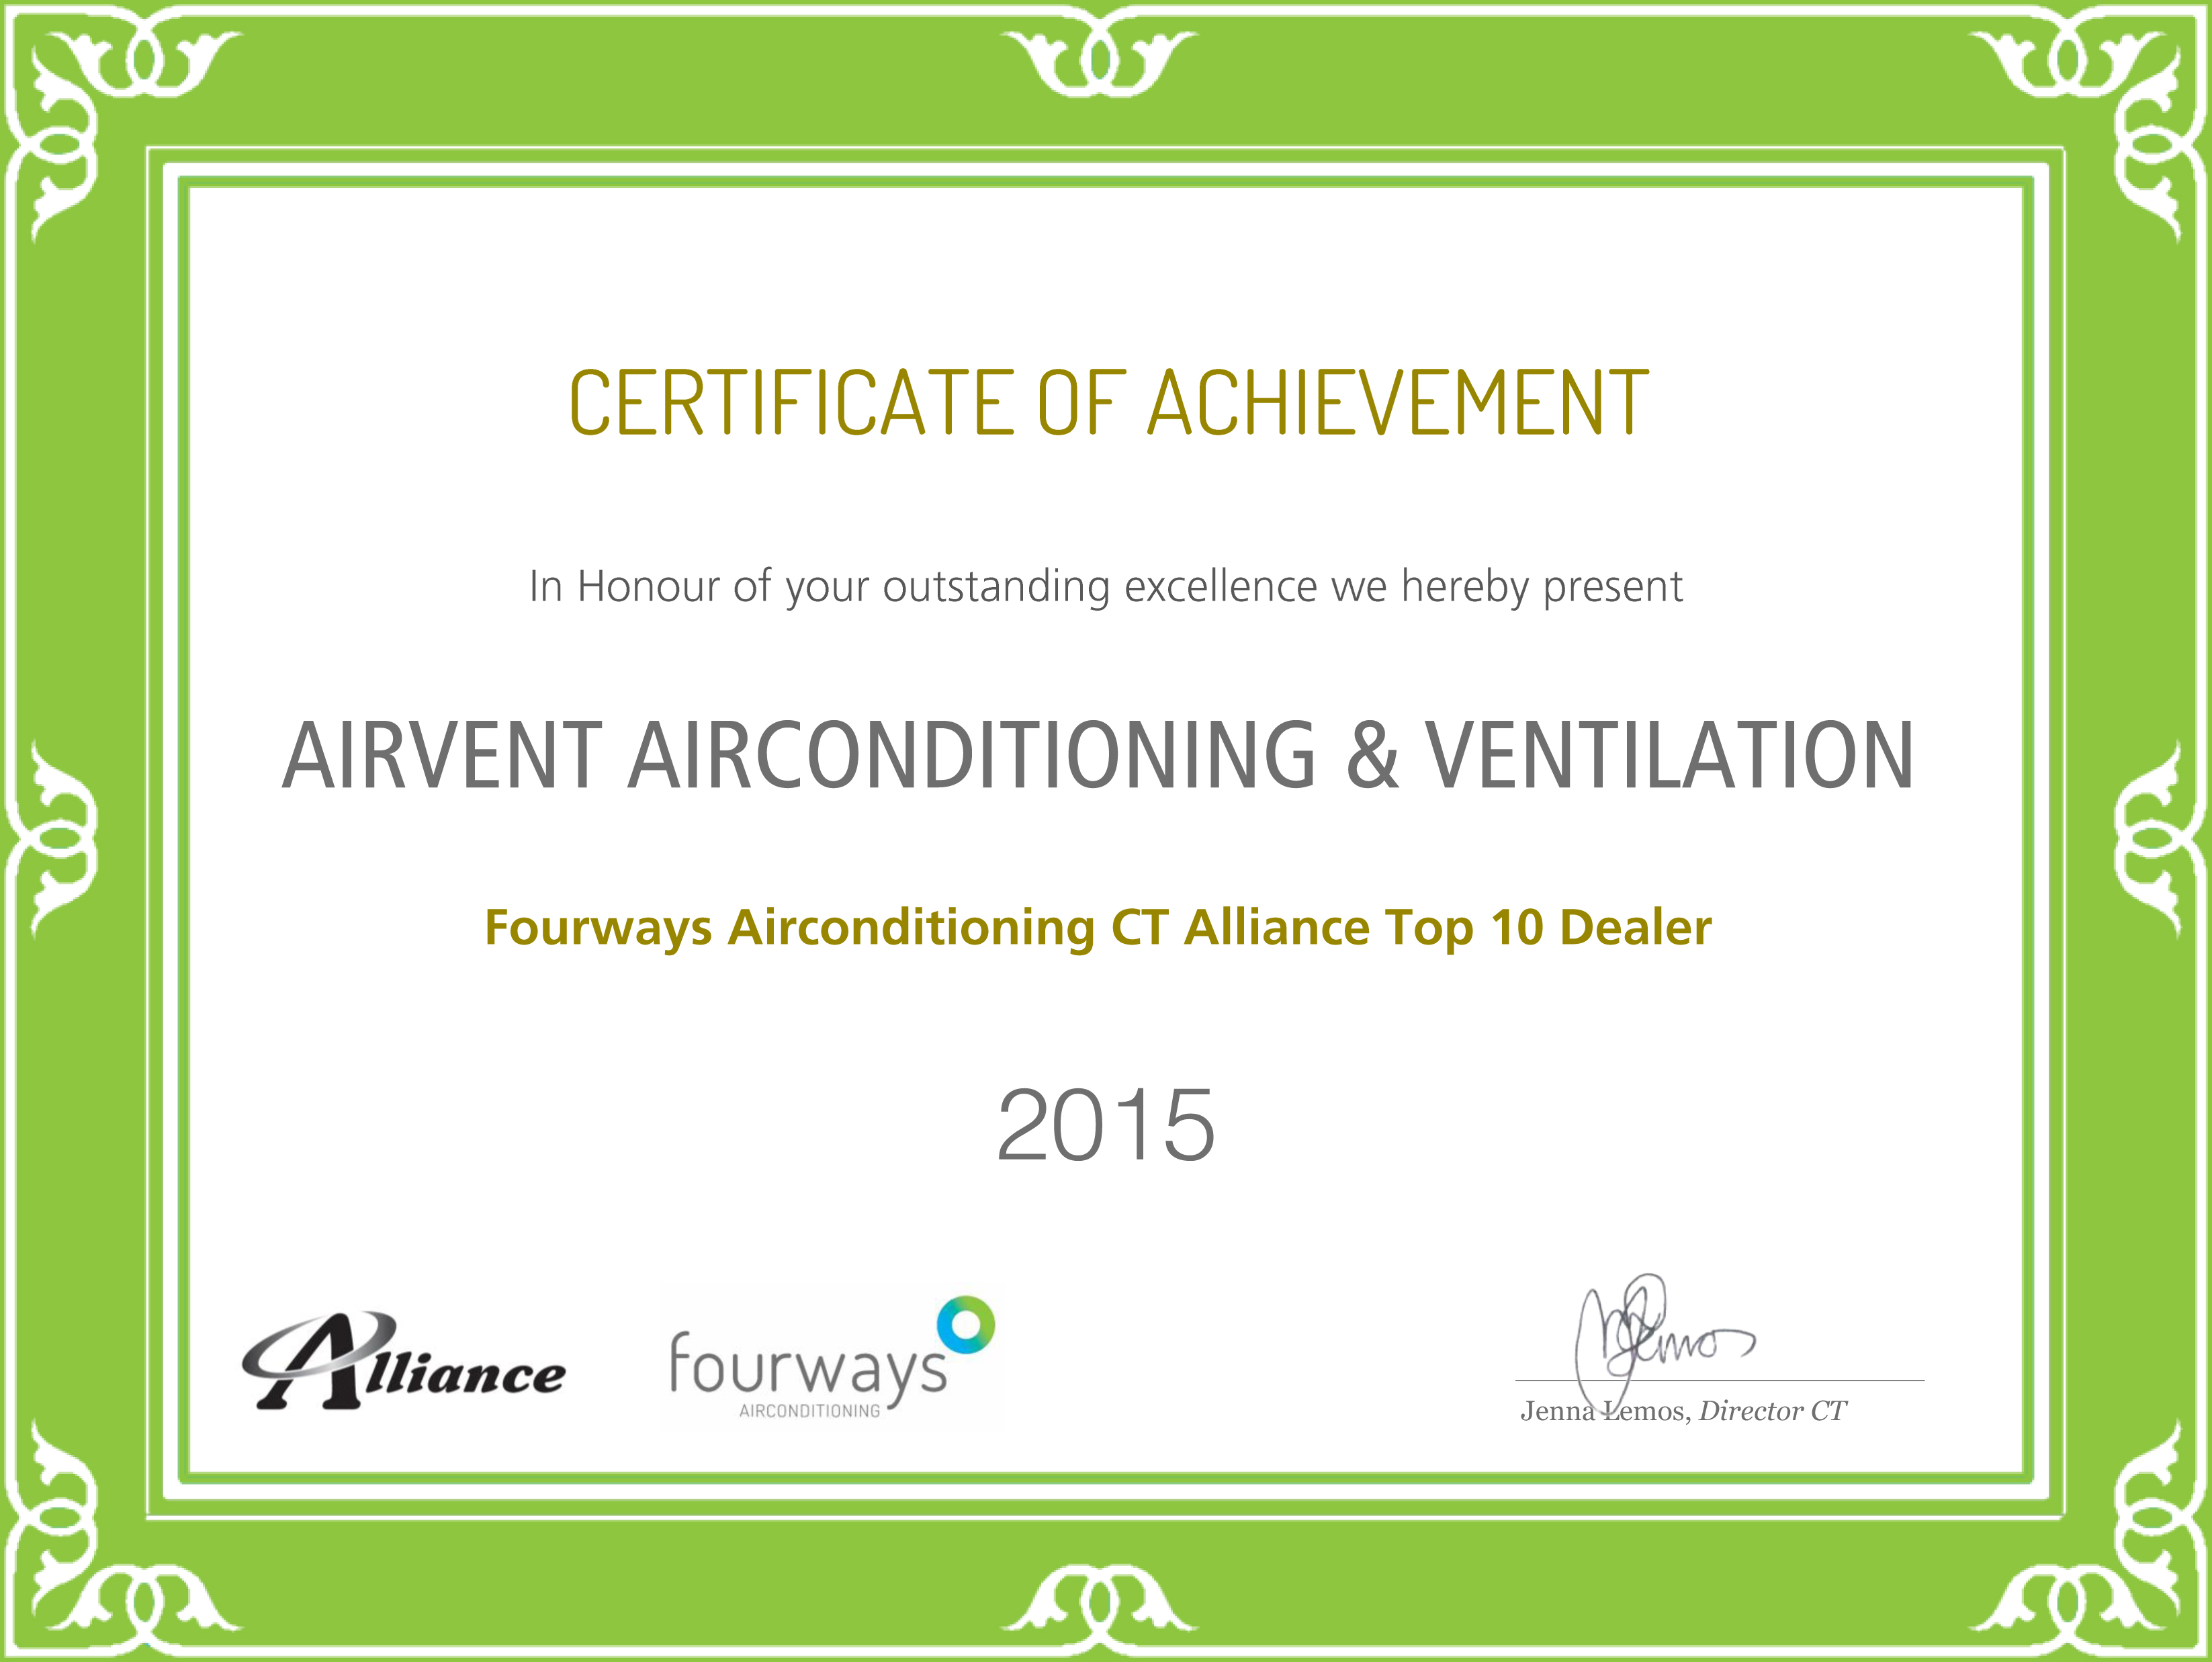 Airvent Airconditioning & Ventiliation Award: Certificate of Achievement Samsung